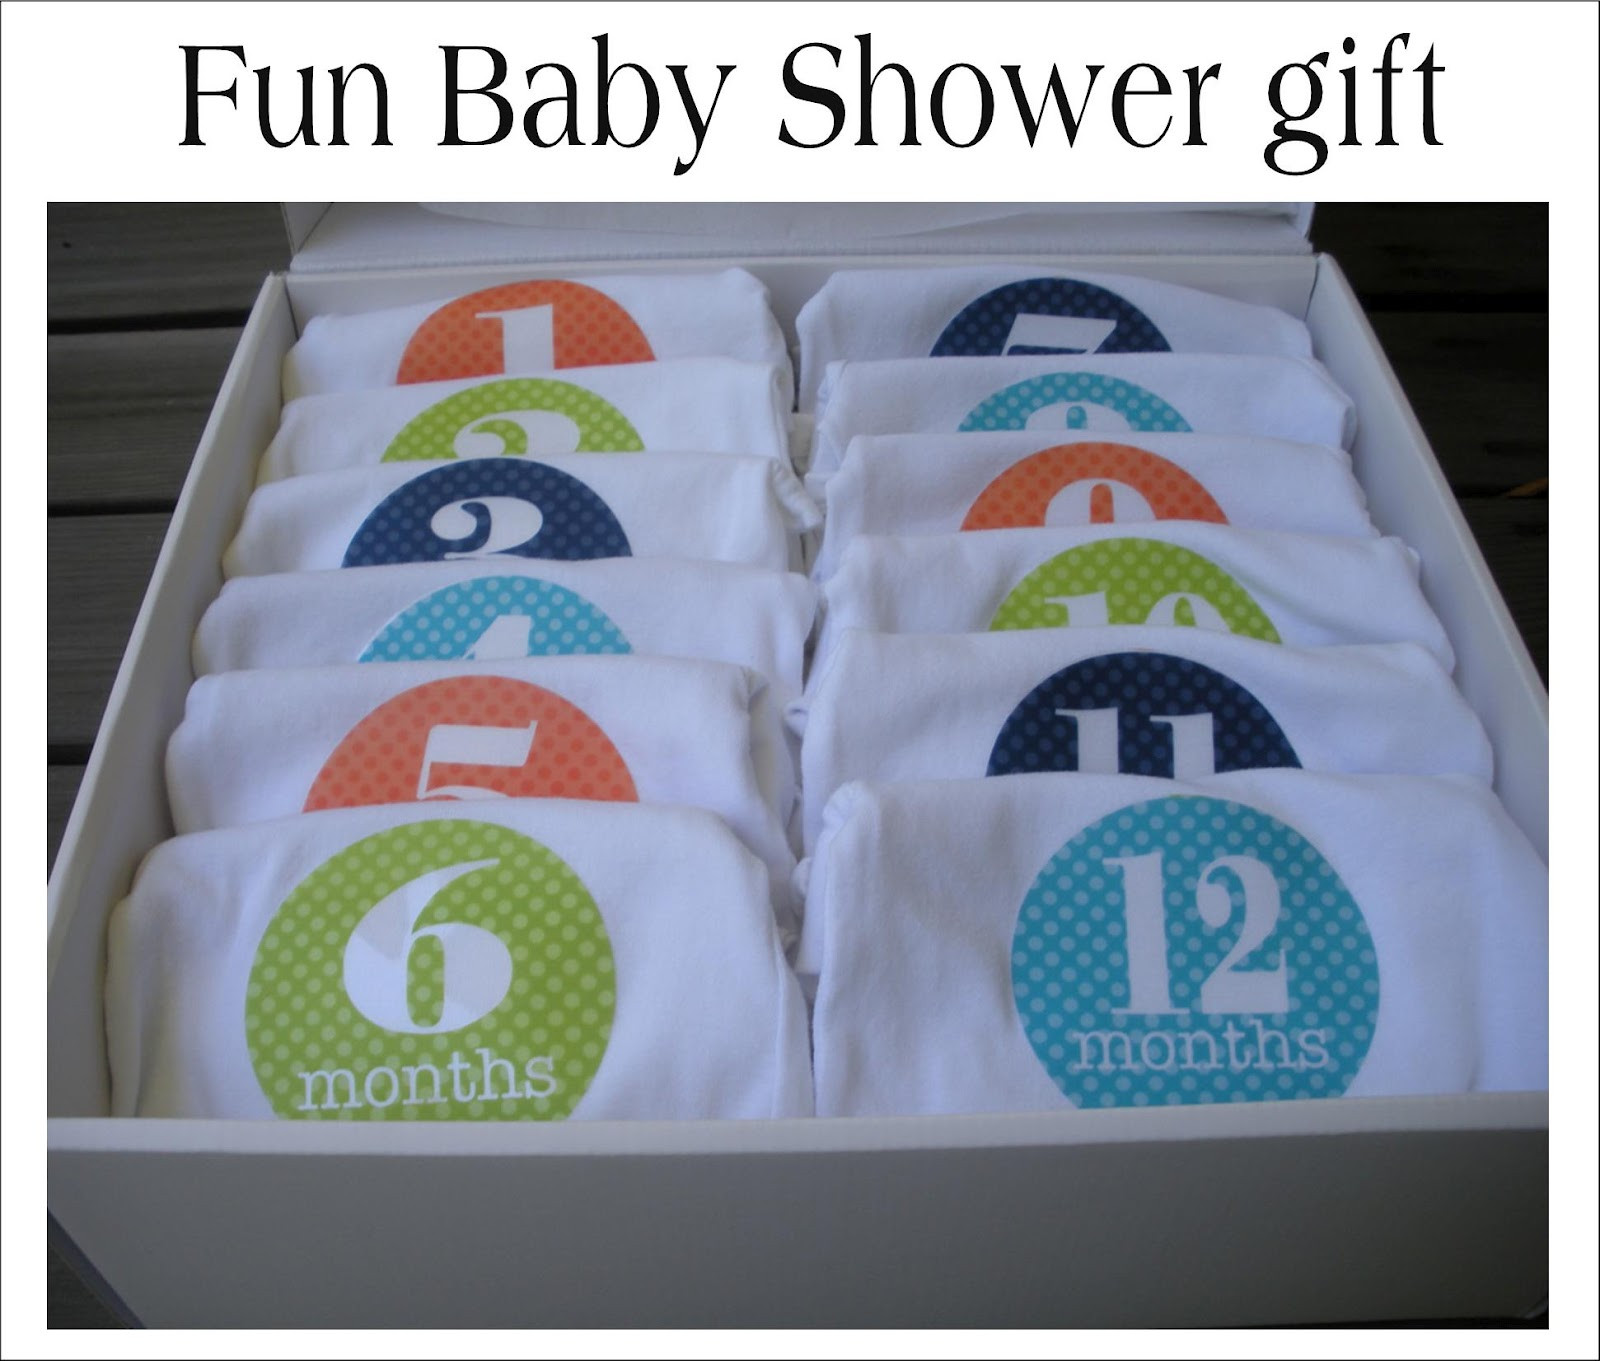 Best ideas about Cute Baby Shower Gift Ideas For A Boy . Save or Pin It s Written on the Wall Cute Ideas for Your Baby Shower Now.